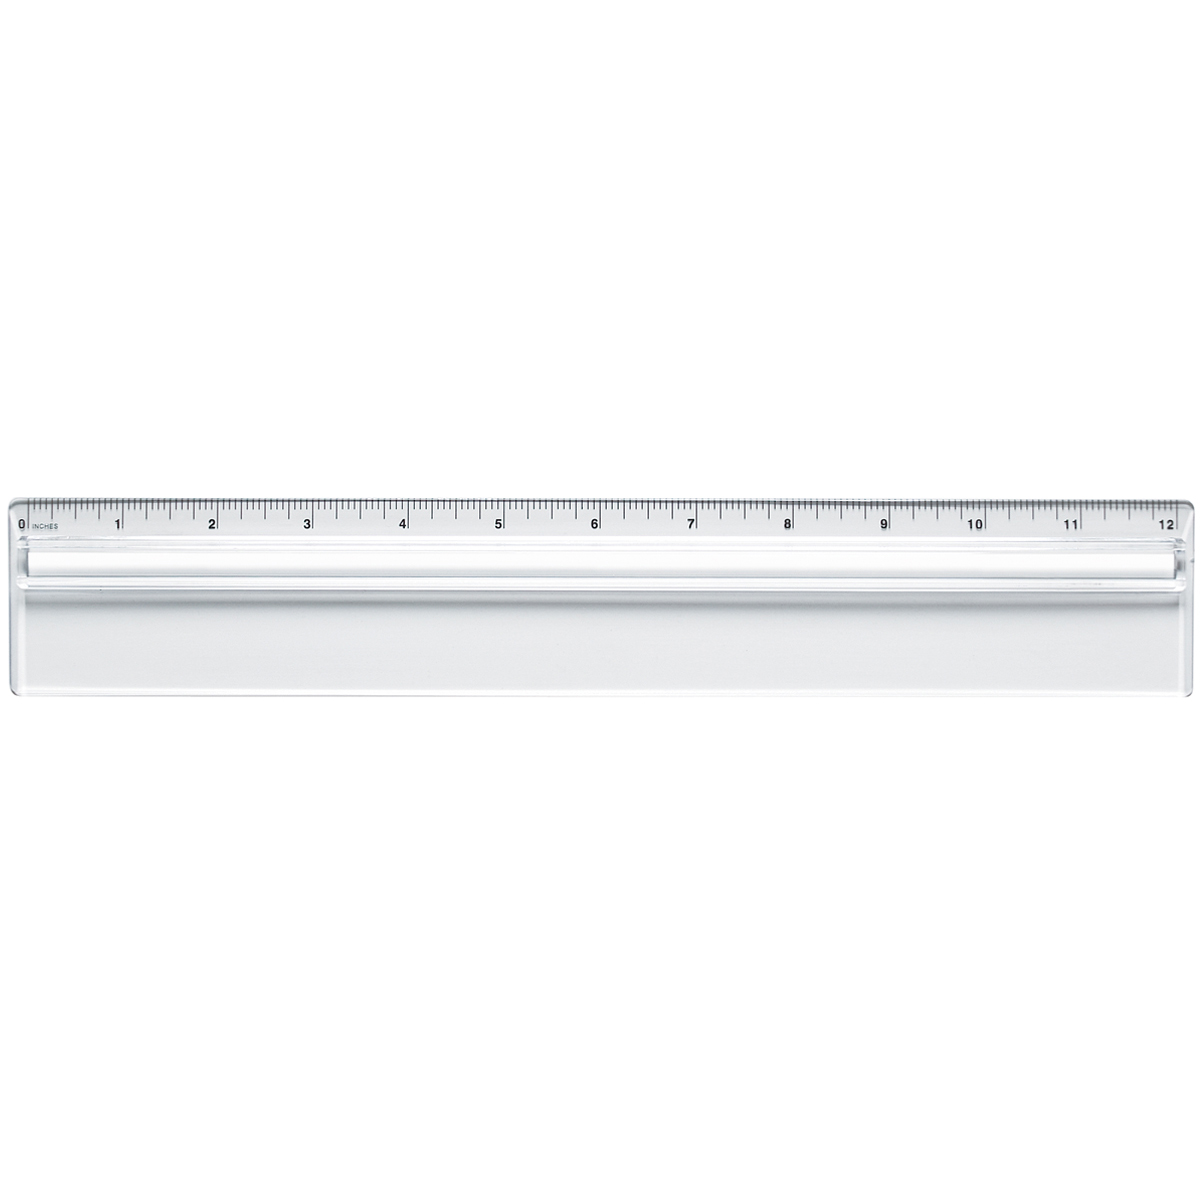 Plastic Ruler With Magnifying Glass 12